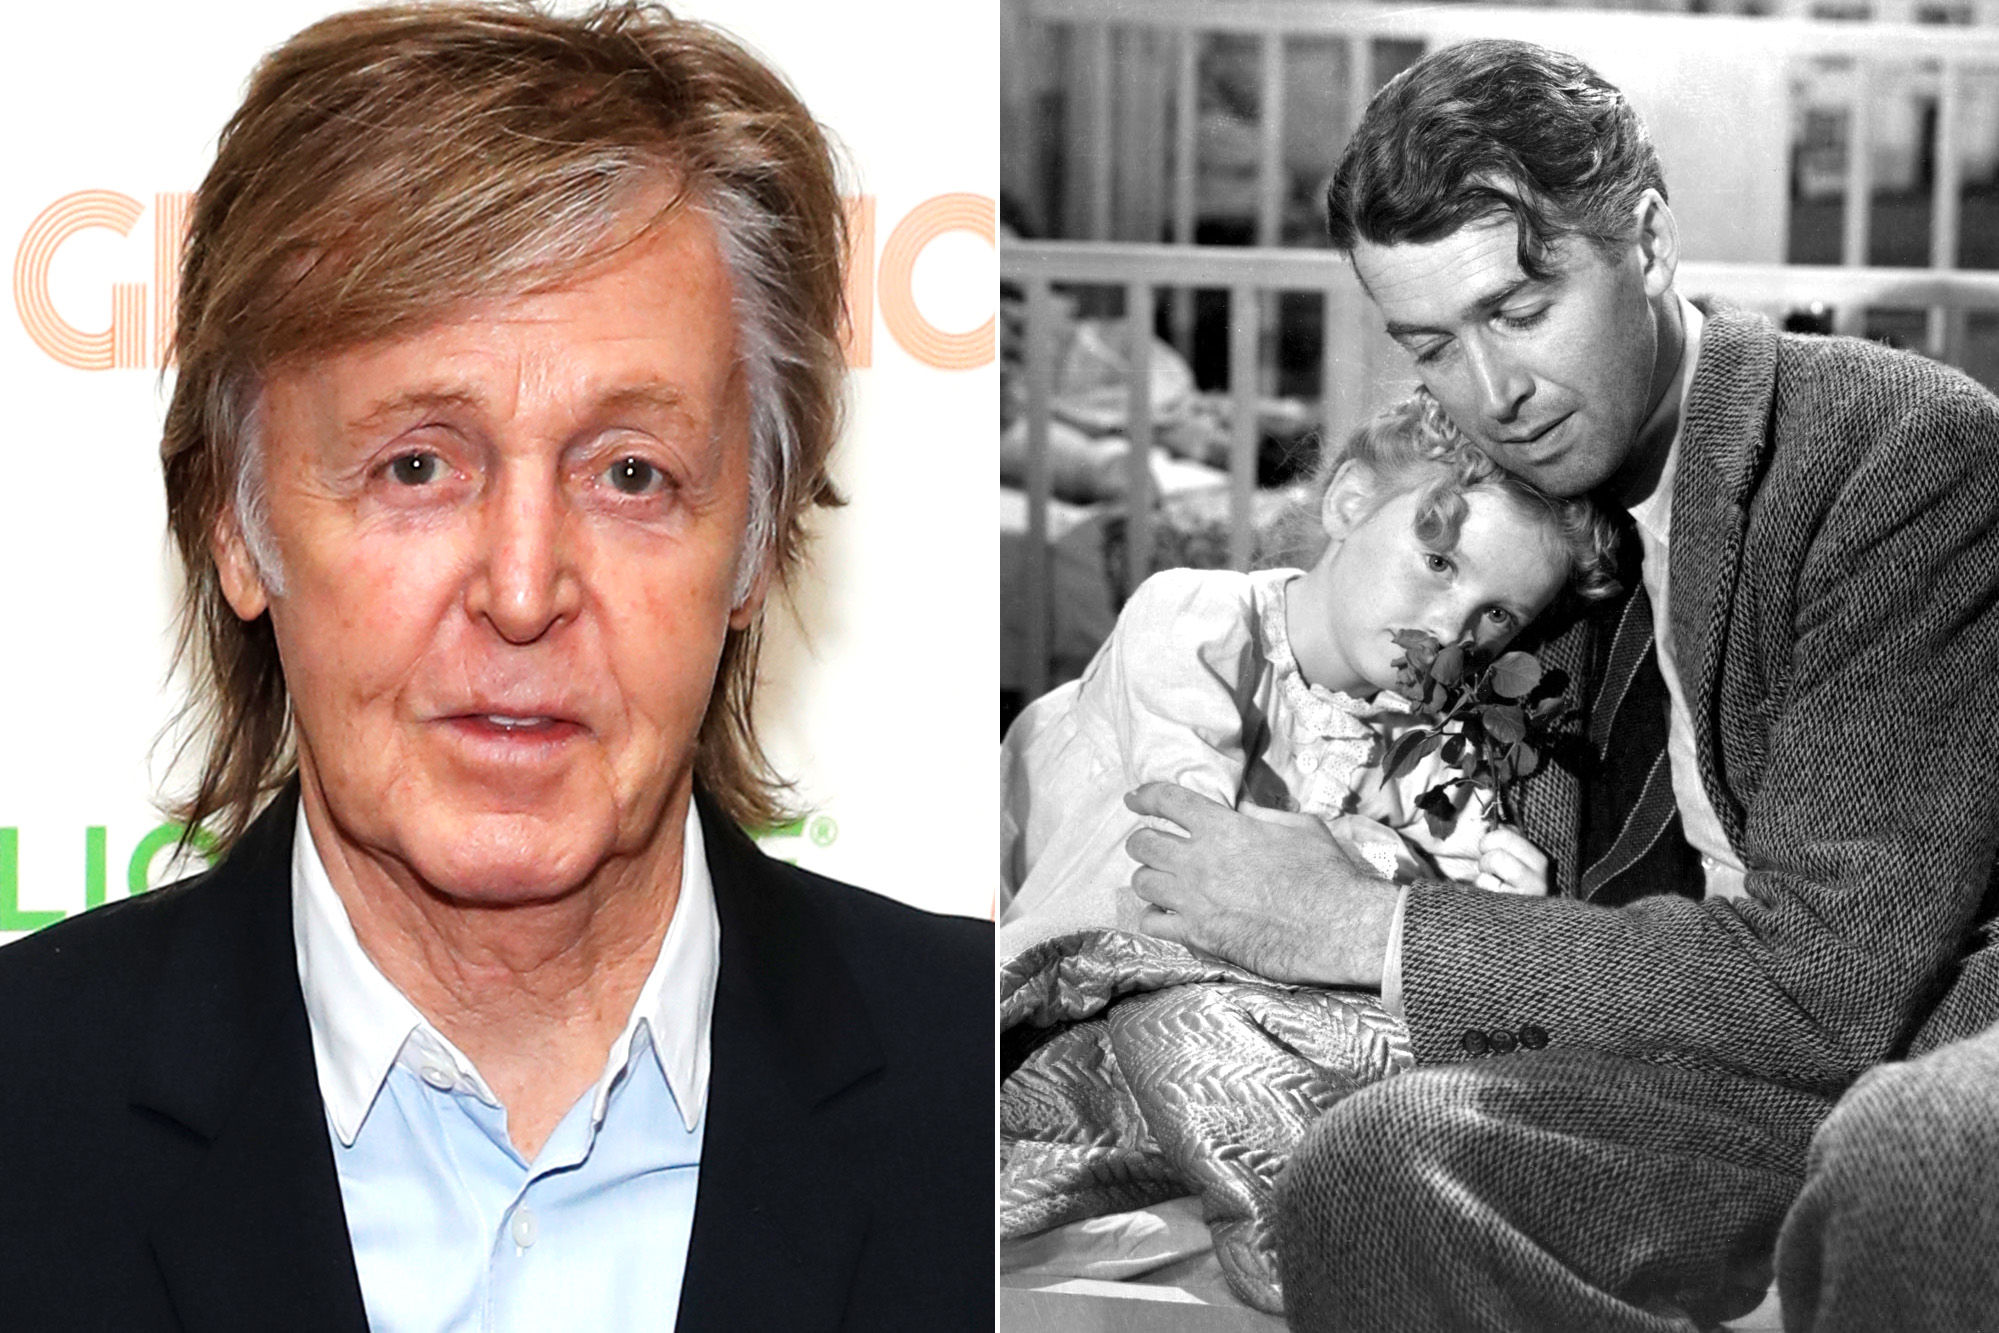 Paul McCartney to write musical adaptation of It's a Wonderful Life